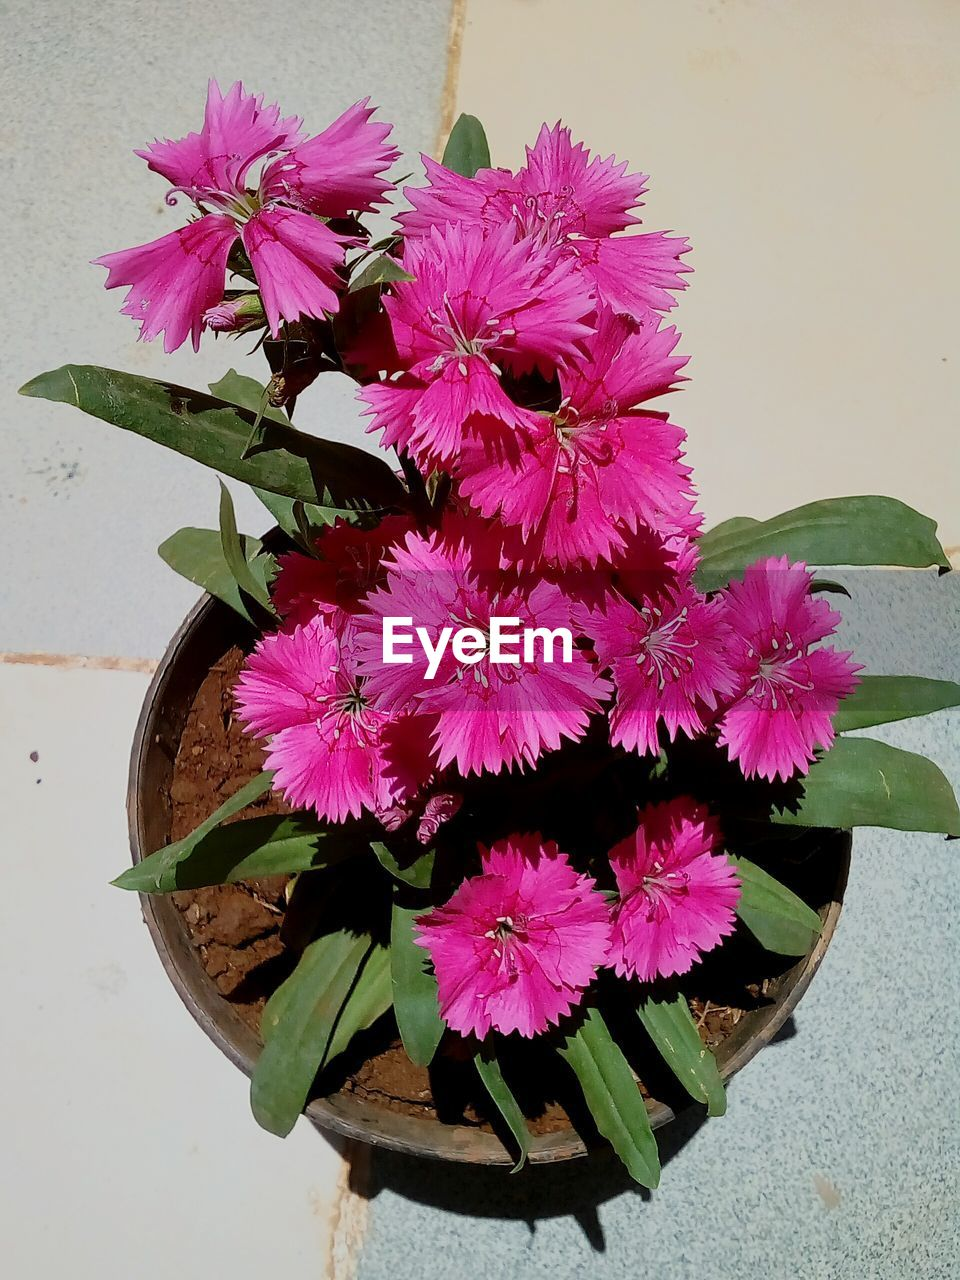 flower, flowering plant, plant, petal, vulnerability, fragility, beauty in nature, flower head, freshness, inflorescence, pink color, close-up, leaf, nature, plant part, growth, potted plant, high angle view, no people, flower pot, outdoors, purple, flower arrangement, bunch of flowers, bouquet